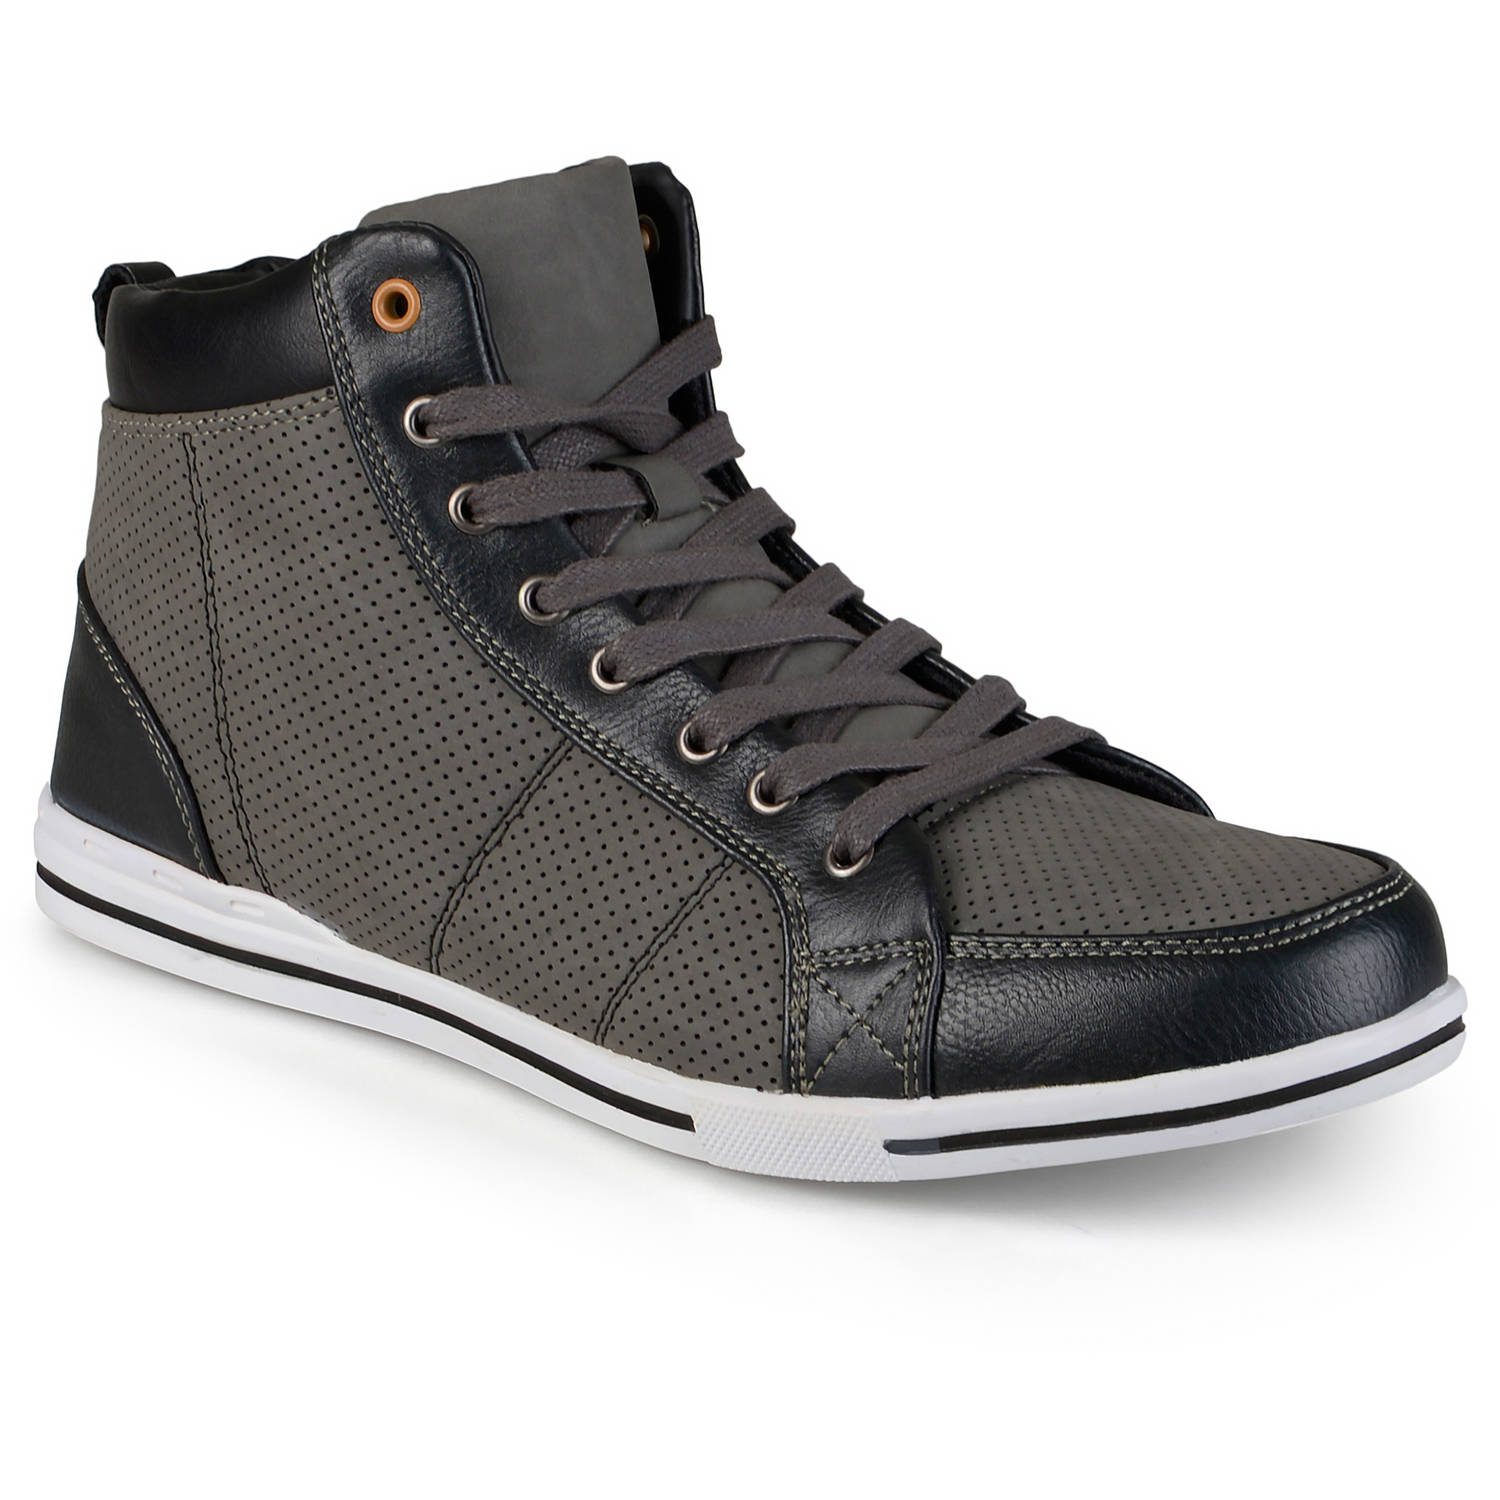 Daxx Mens Casual High Top Lace-up Sneakers